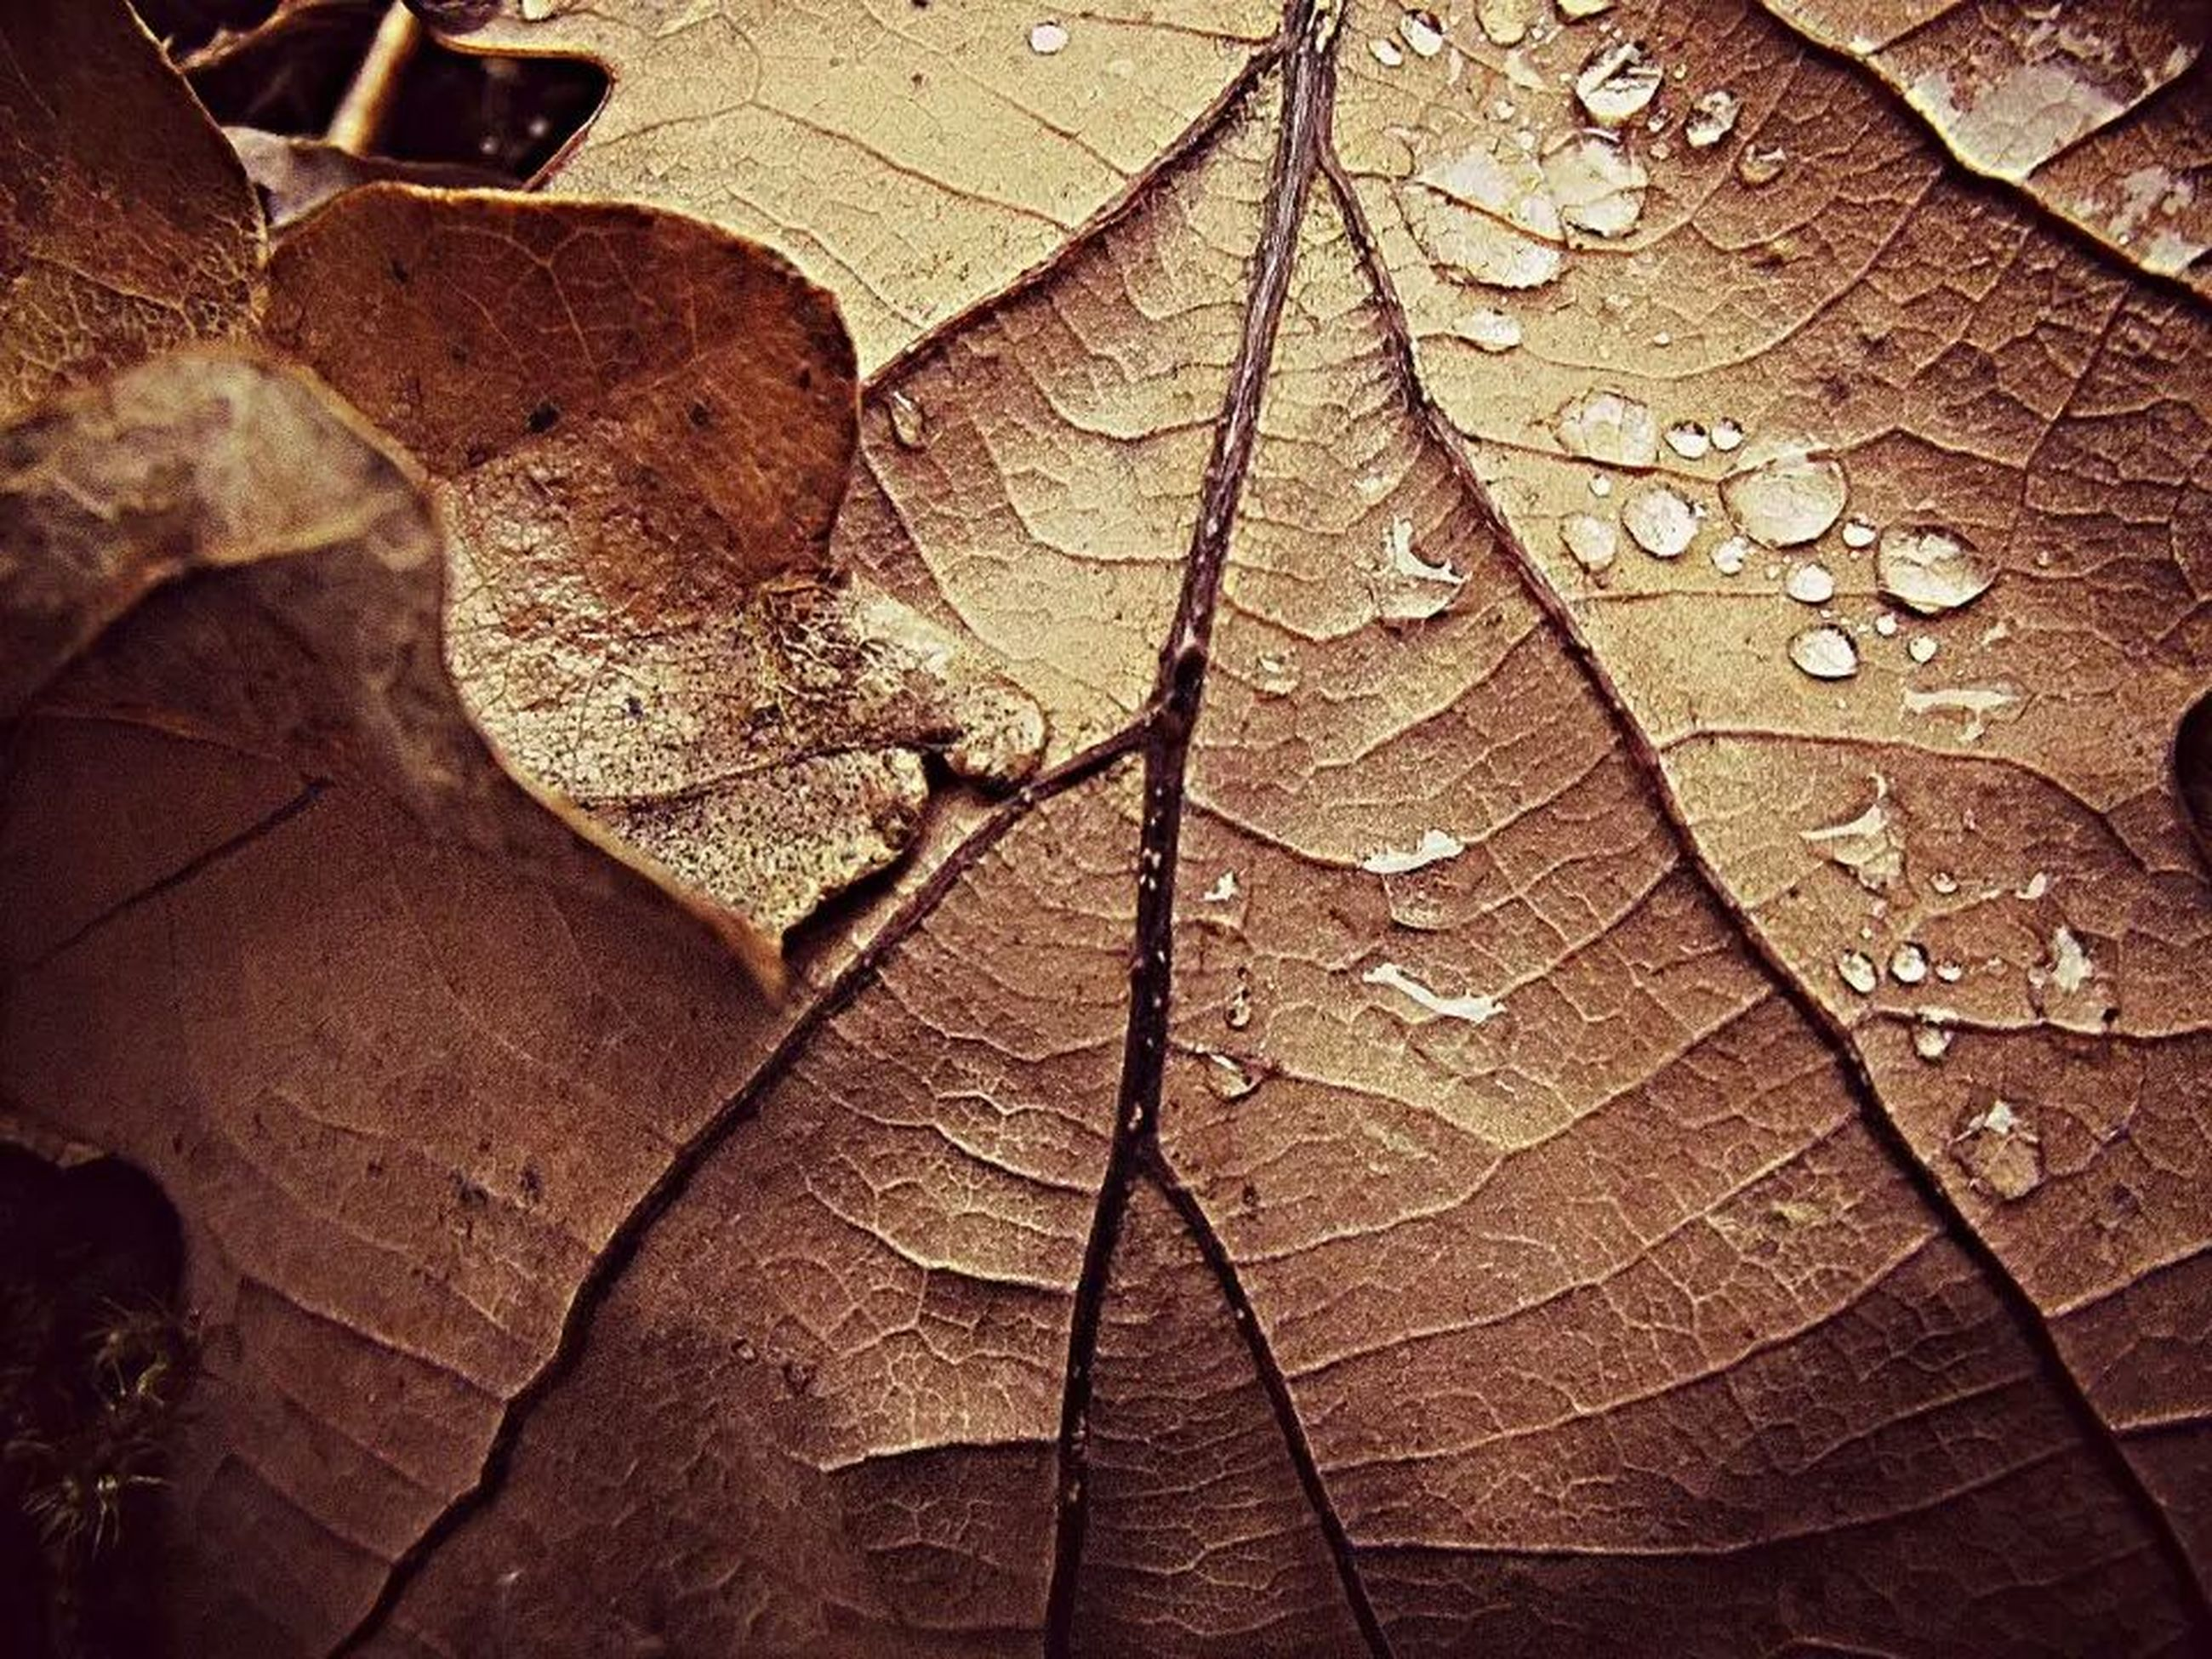 high angle view, water, wet, close-up, leaf, season, nature, outdoors, day, no people, street, textured, pattern, sunlight, dry, backgrounds, shadow, autumn, full frame, reflection